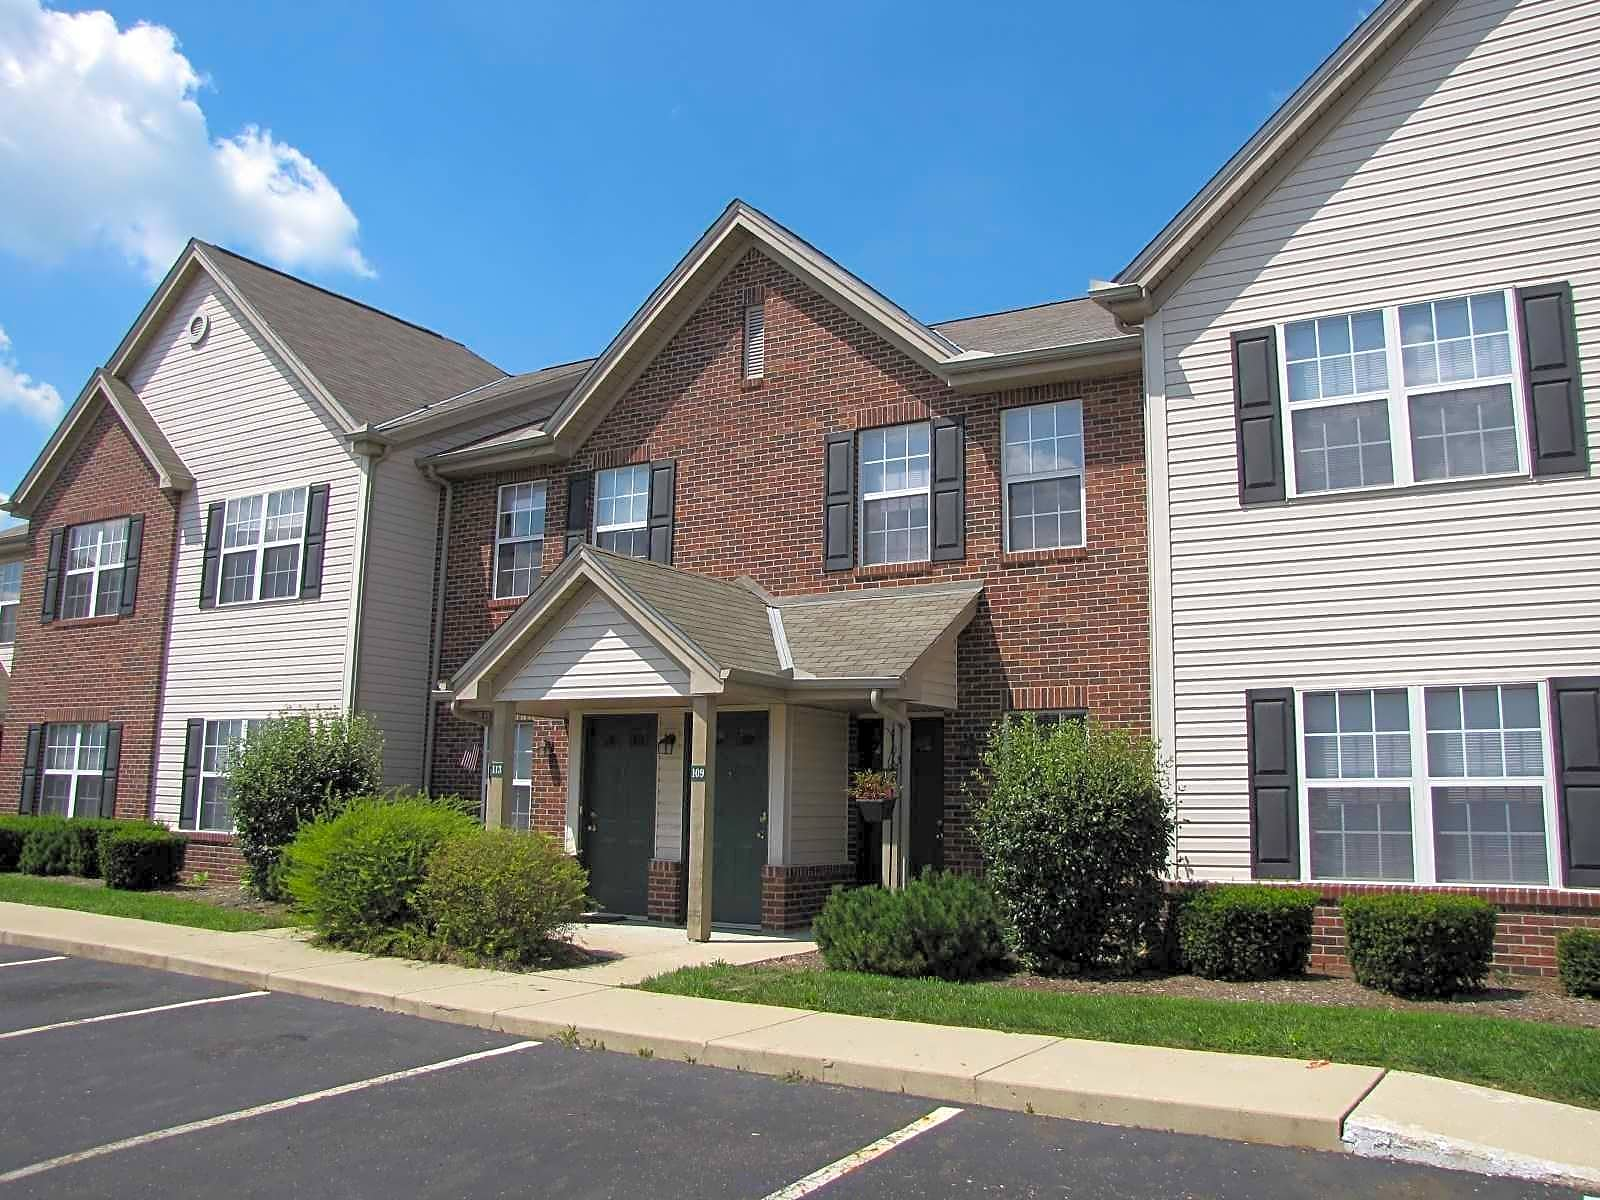 Pickerington Ridge Apartments - Pickerington, OH 43147